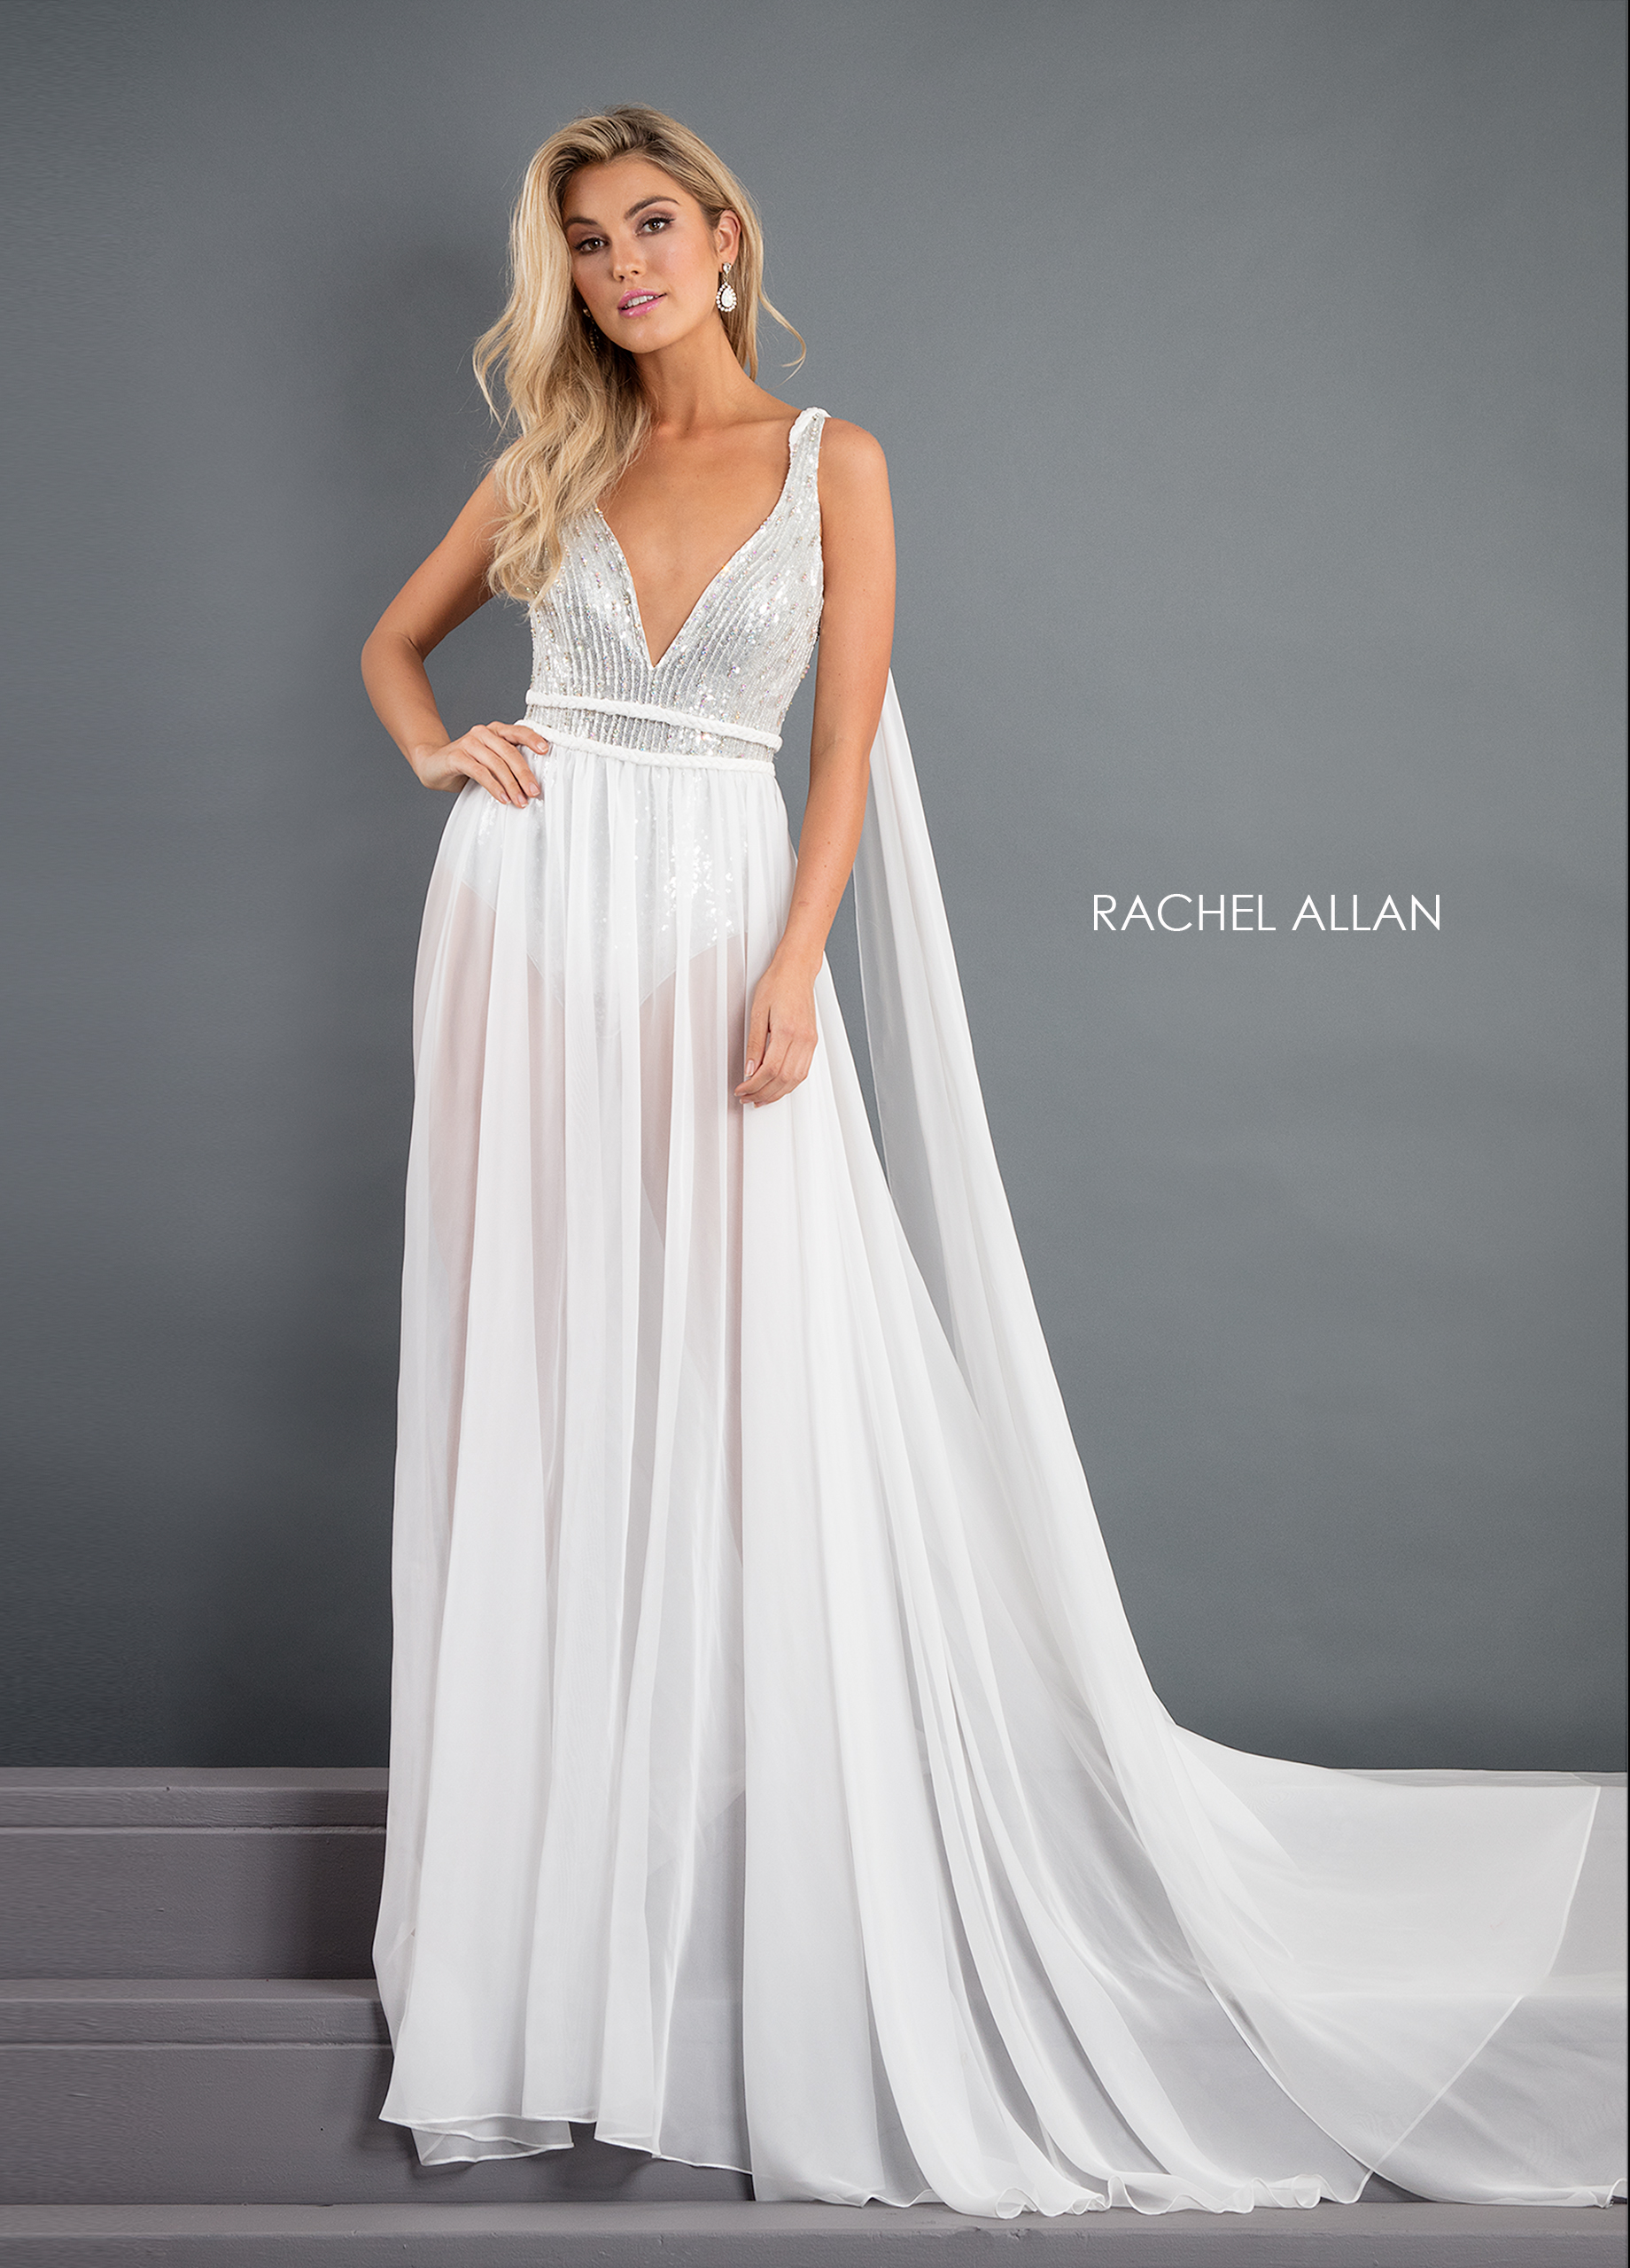 V-Neck Skirt With Overlay Pageant Dresses in White Color